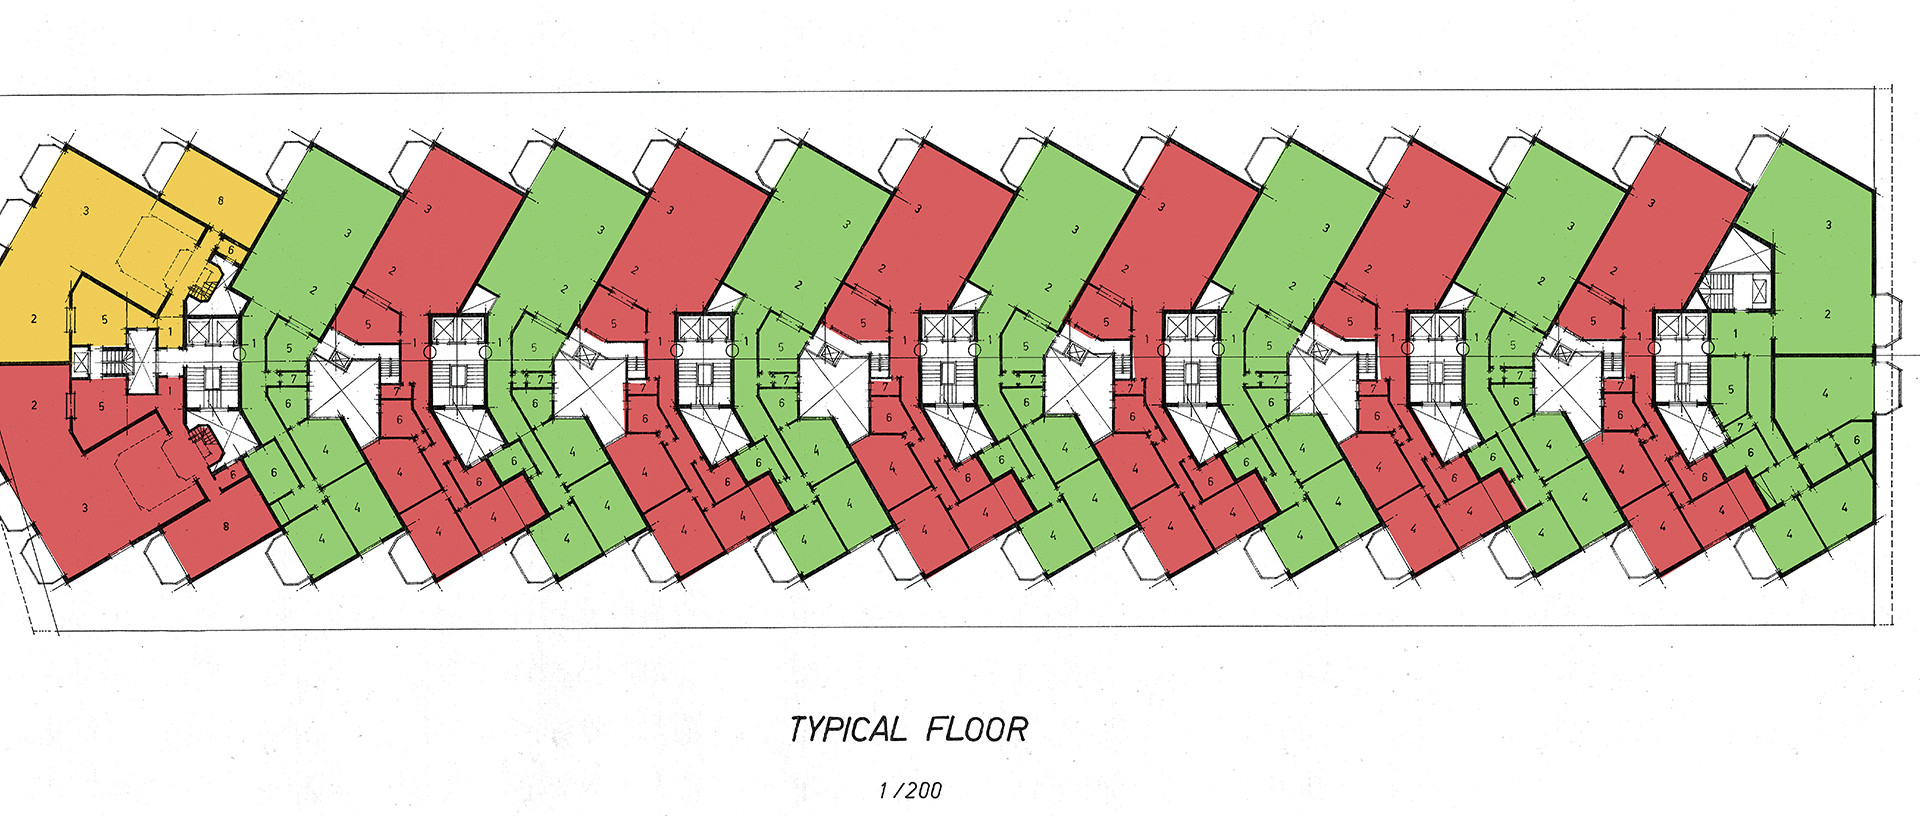 Hedico Maadi 200 Skyscraper Typical Floor Plan